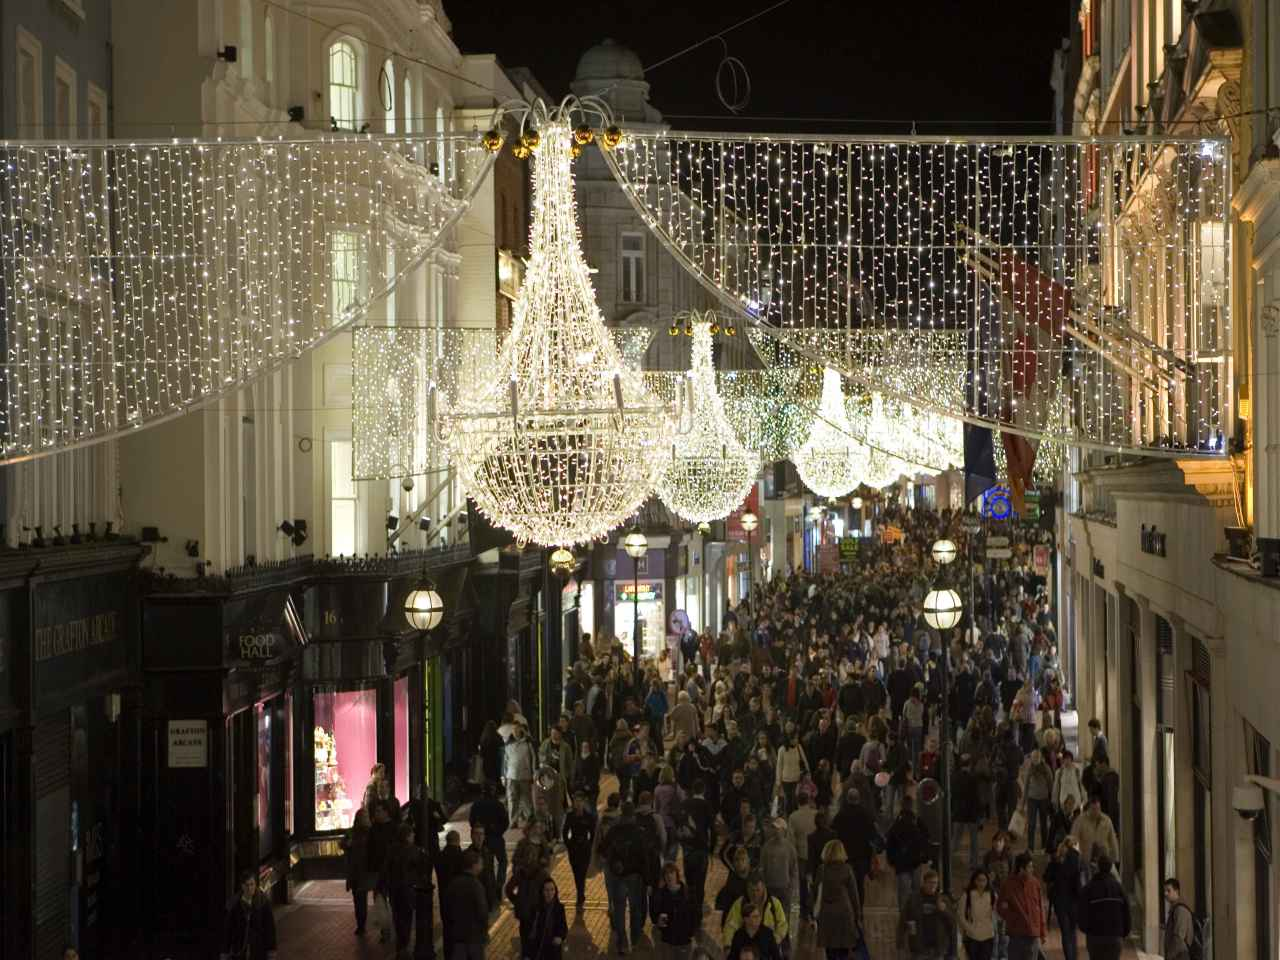 Grafton Street bustling with Christmas Shoppers, seen from a height, landscape